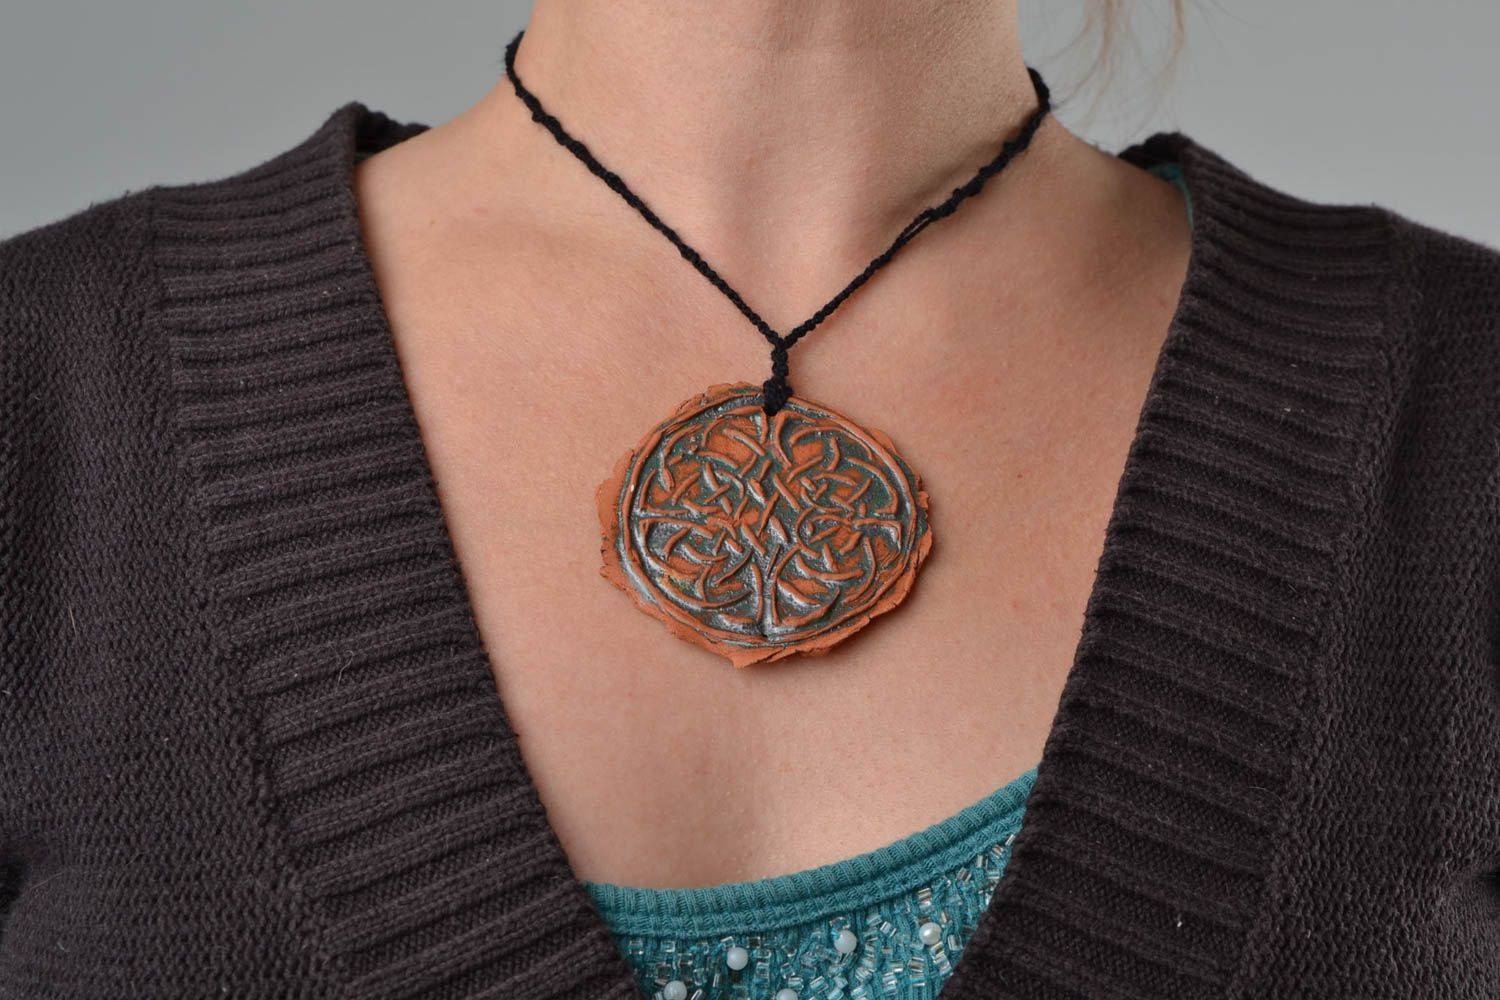 Handmade women's designer ceramic round pendant with relief ornament on cord photo 2